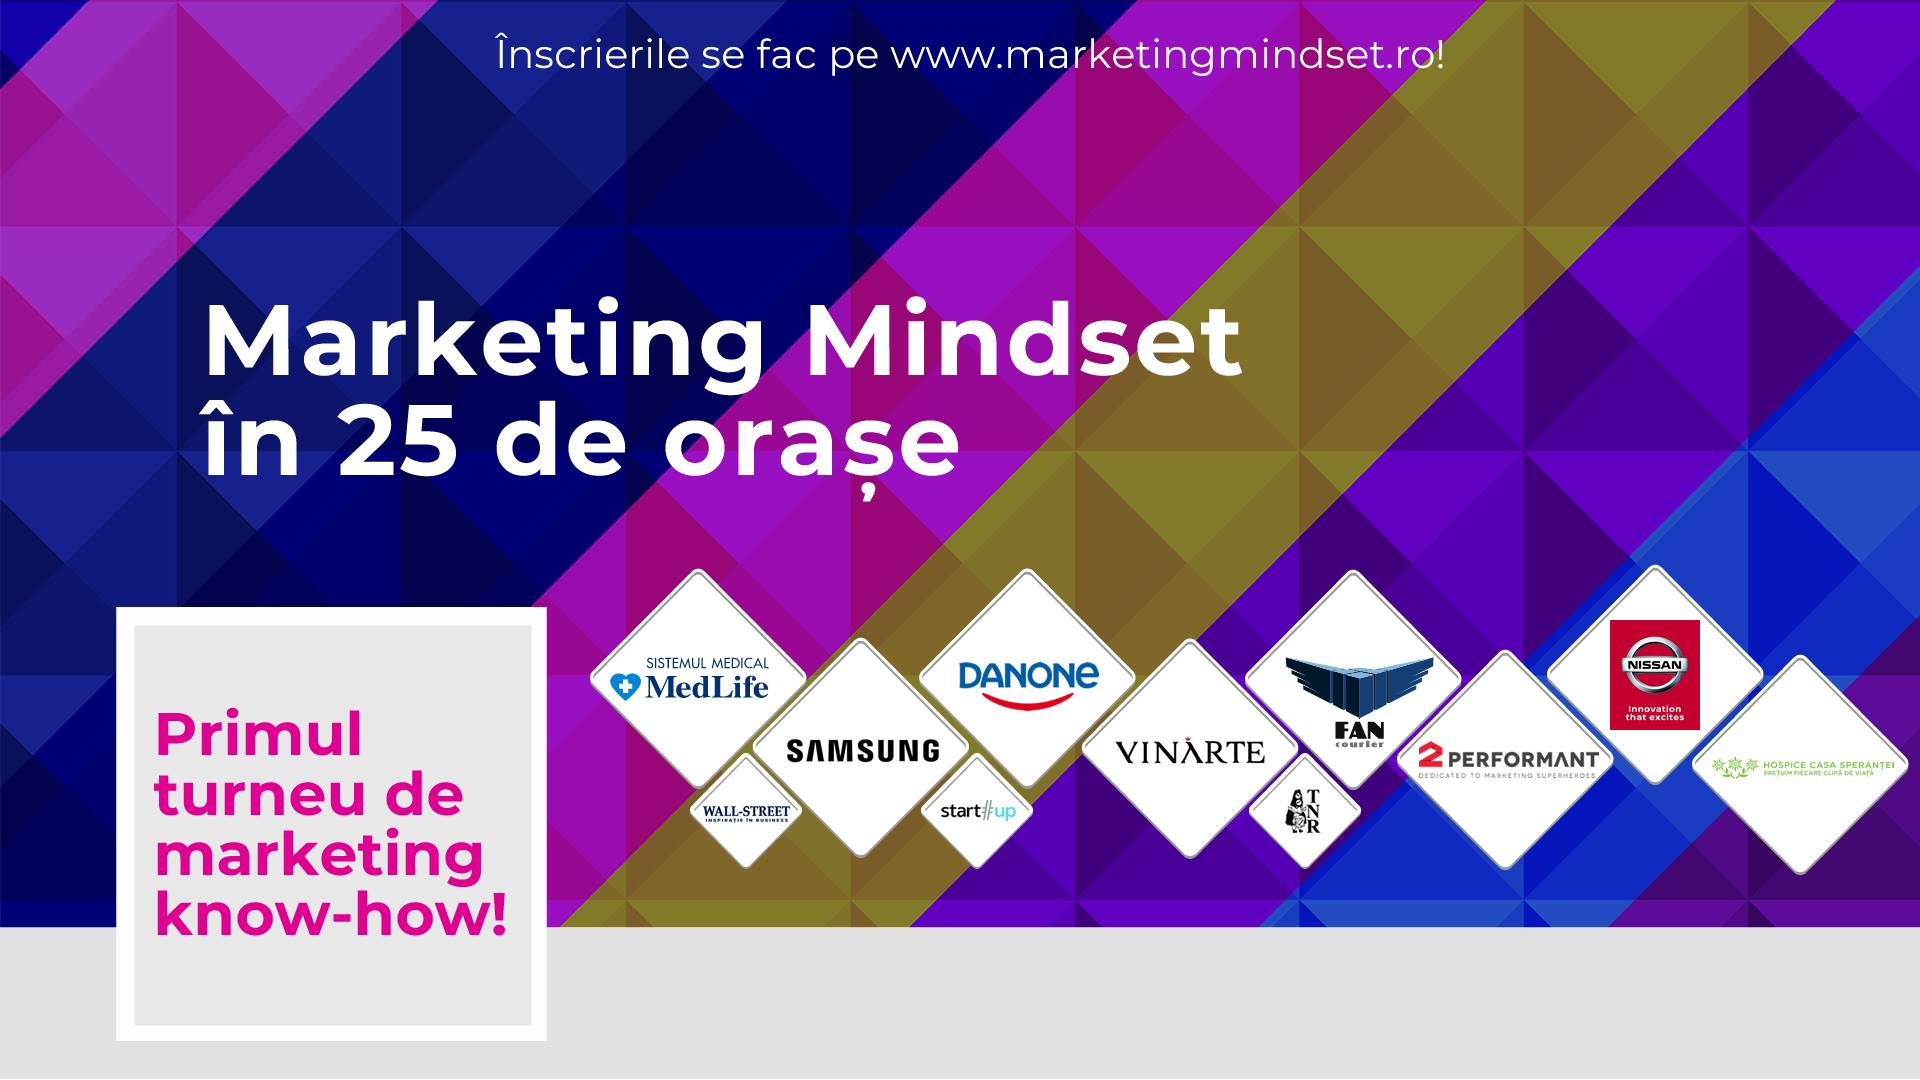 marketing mindset iasi alex dona